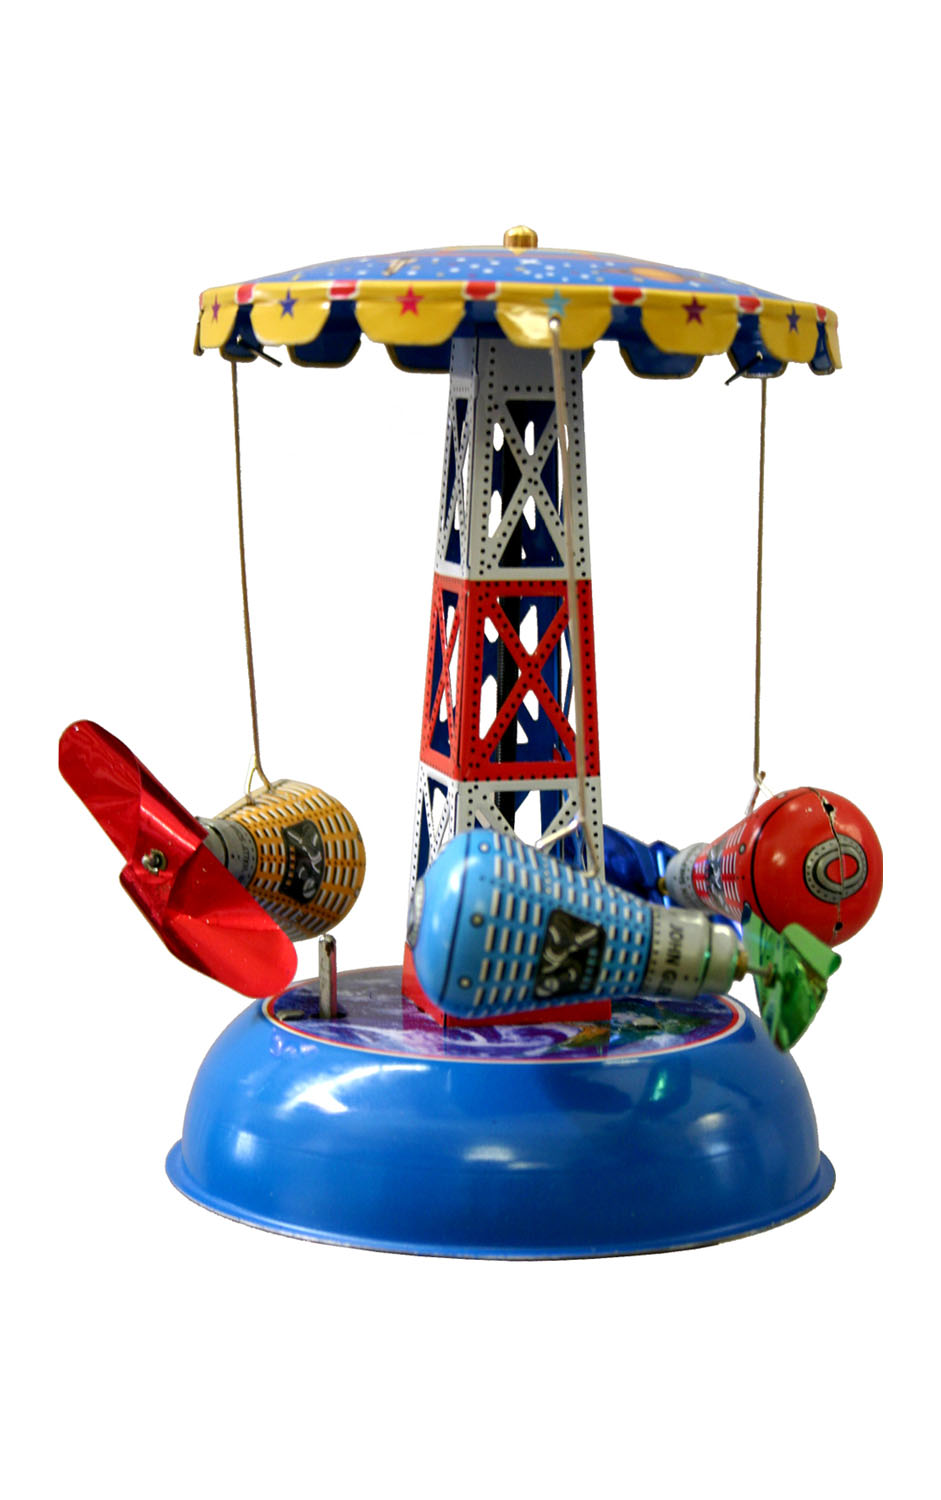 Alexandor Taron Home Decor Collectible Carousel with Space Capsules Tin Toy